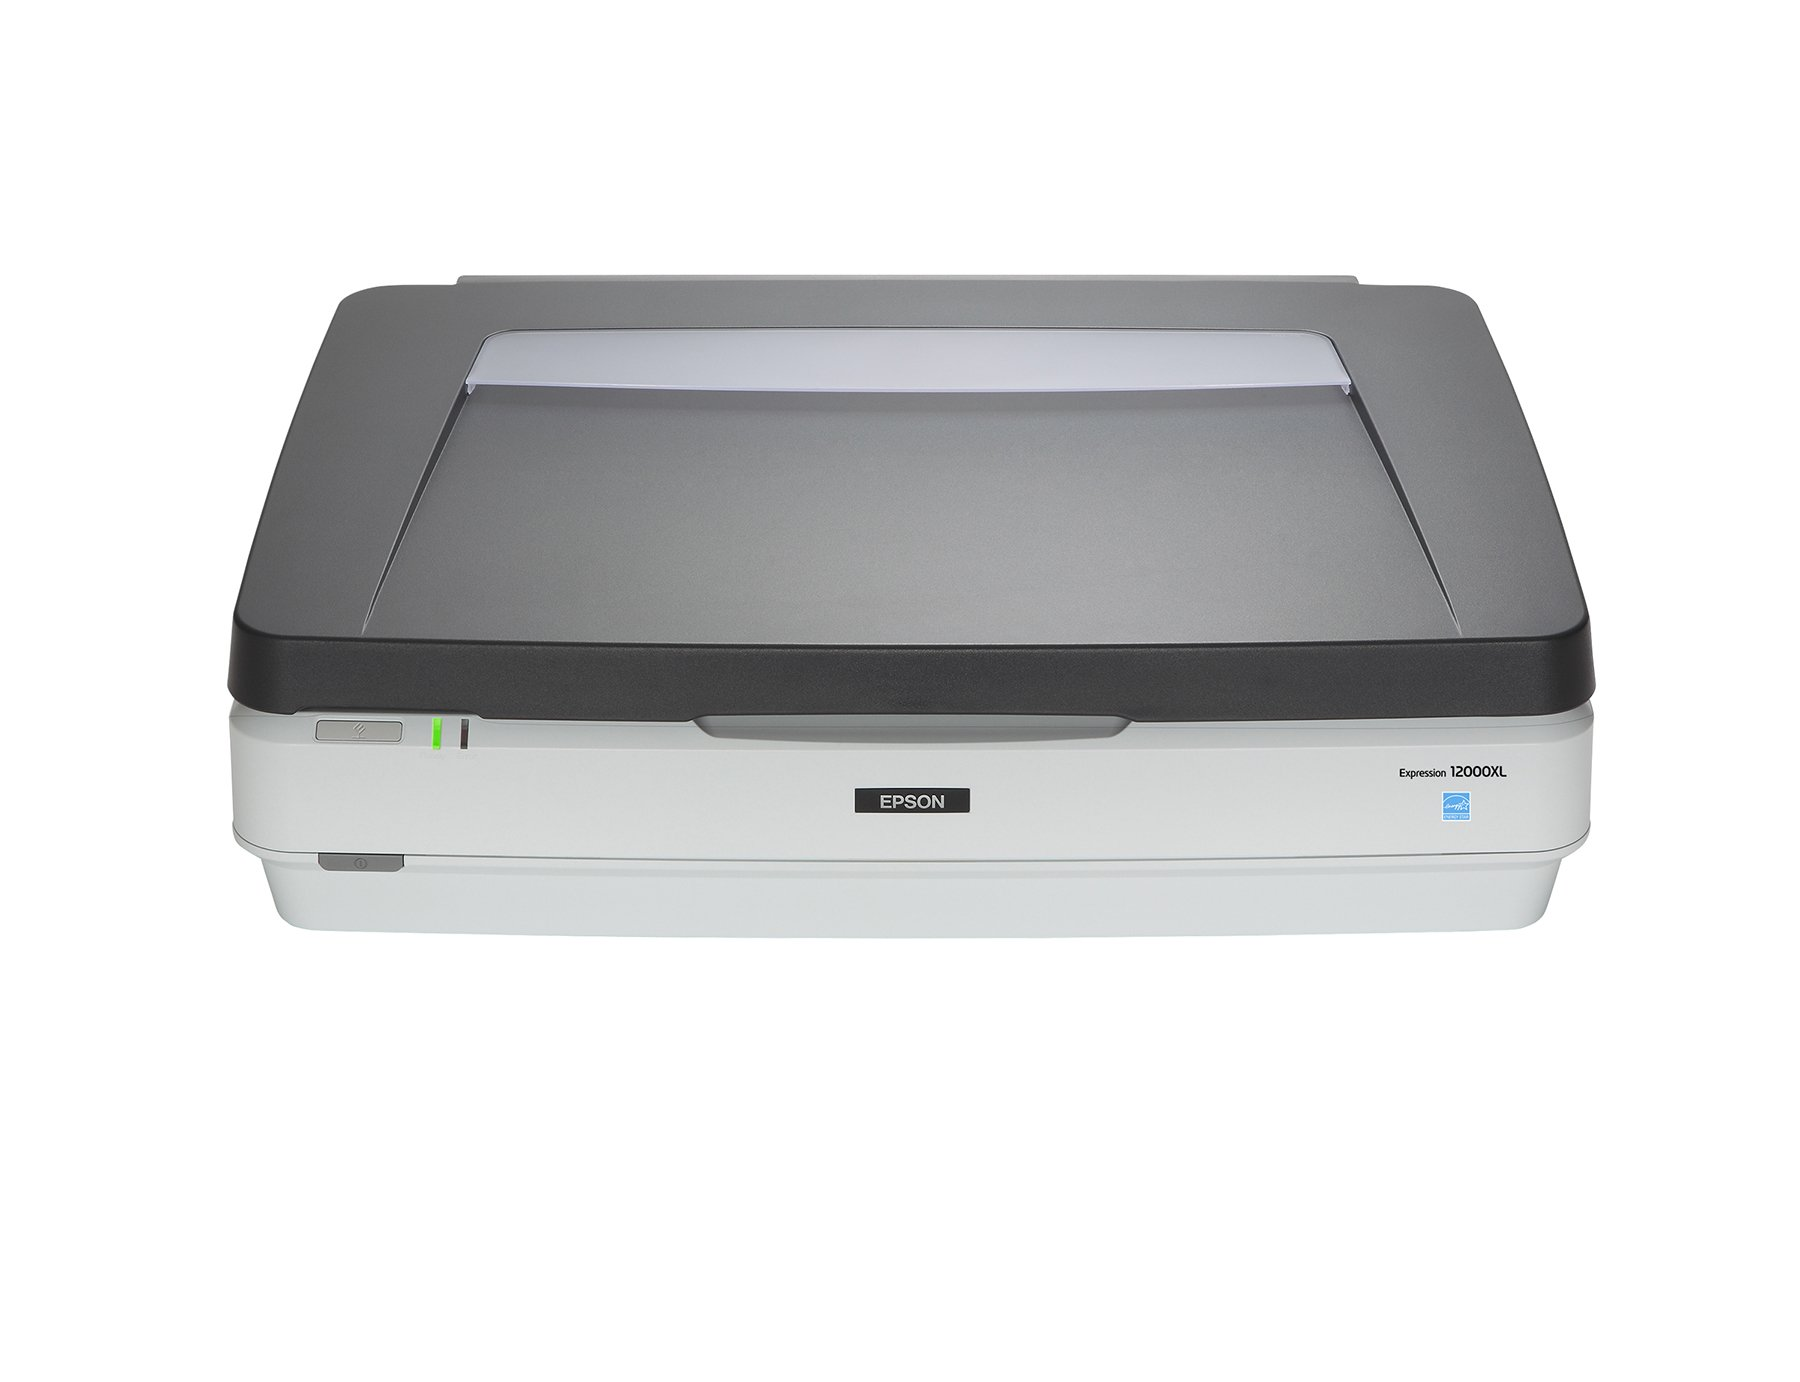 Epson 12000XL-PH Expression Flatbed Scanner